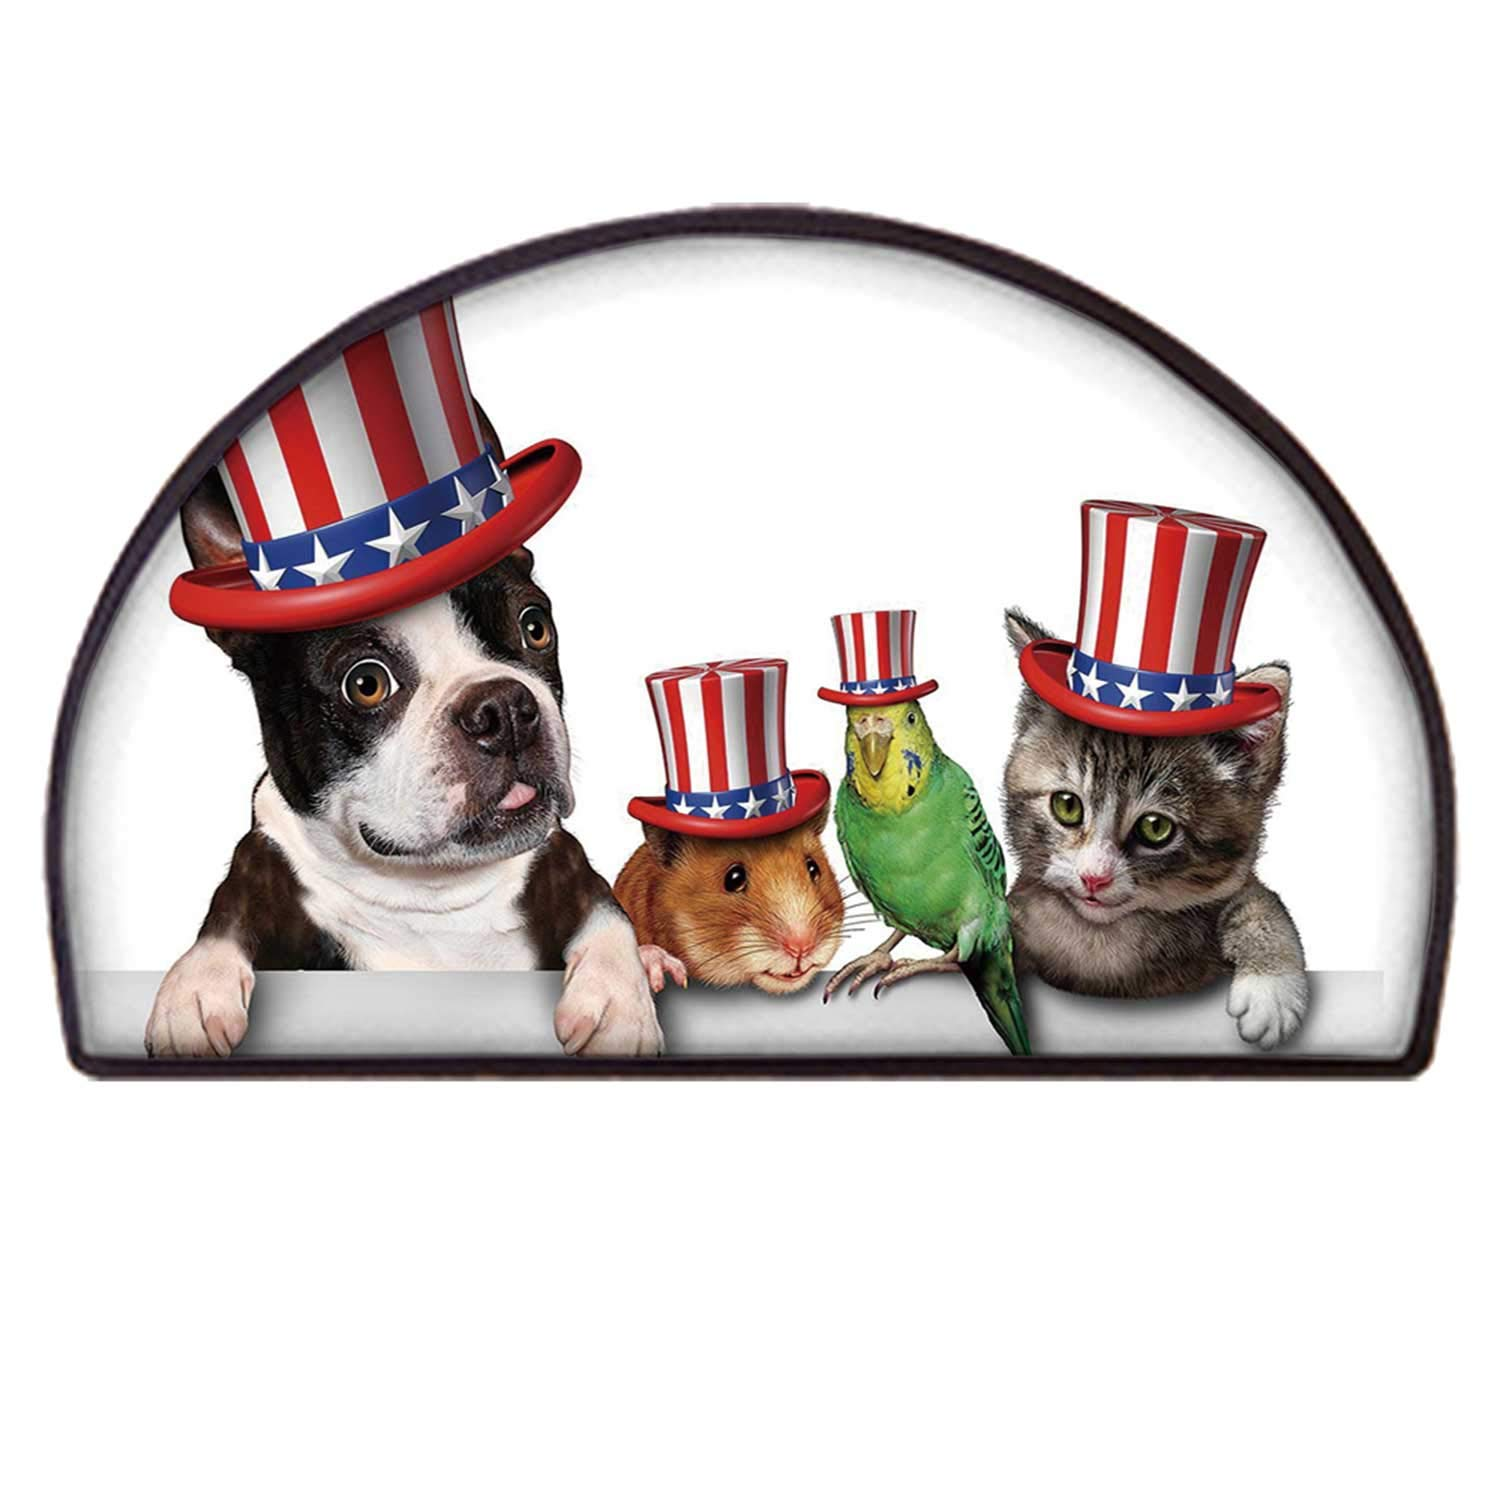 C COABALLA Fourth of July Practical Semicircle Mat,Cute Pet Animal Dog Cat Bird and Hamster with American Hat Celebration Image Decorative for Back Door,100 x 200cm / 39.37 x 78.74 inch by C COABALLA